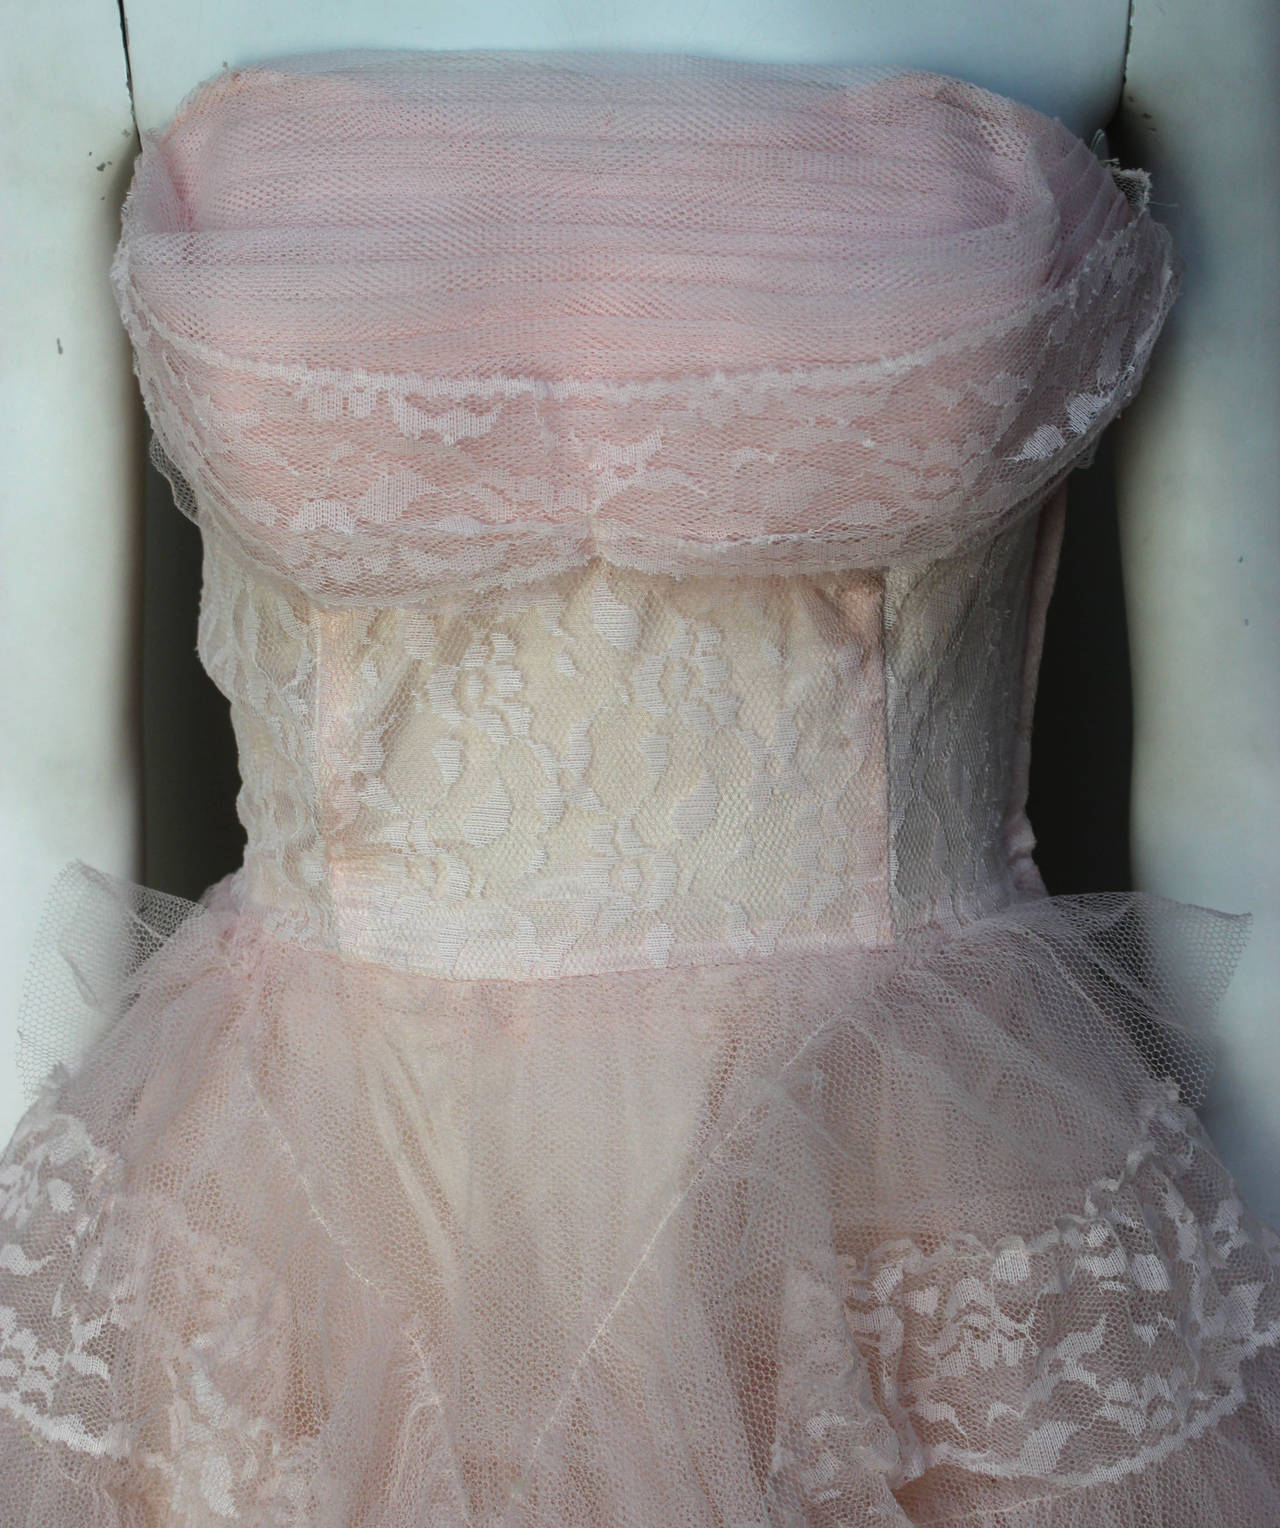 Stunning Never Worn 1950s Pink Tulle Evening Dress with Lace Bolero For Sale 3